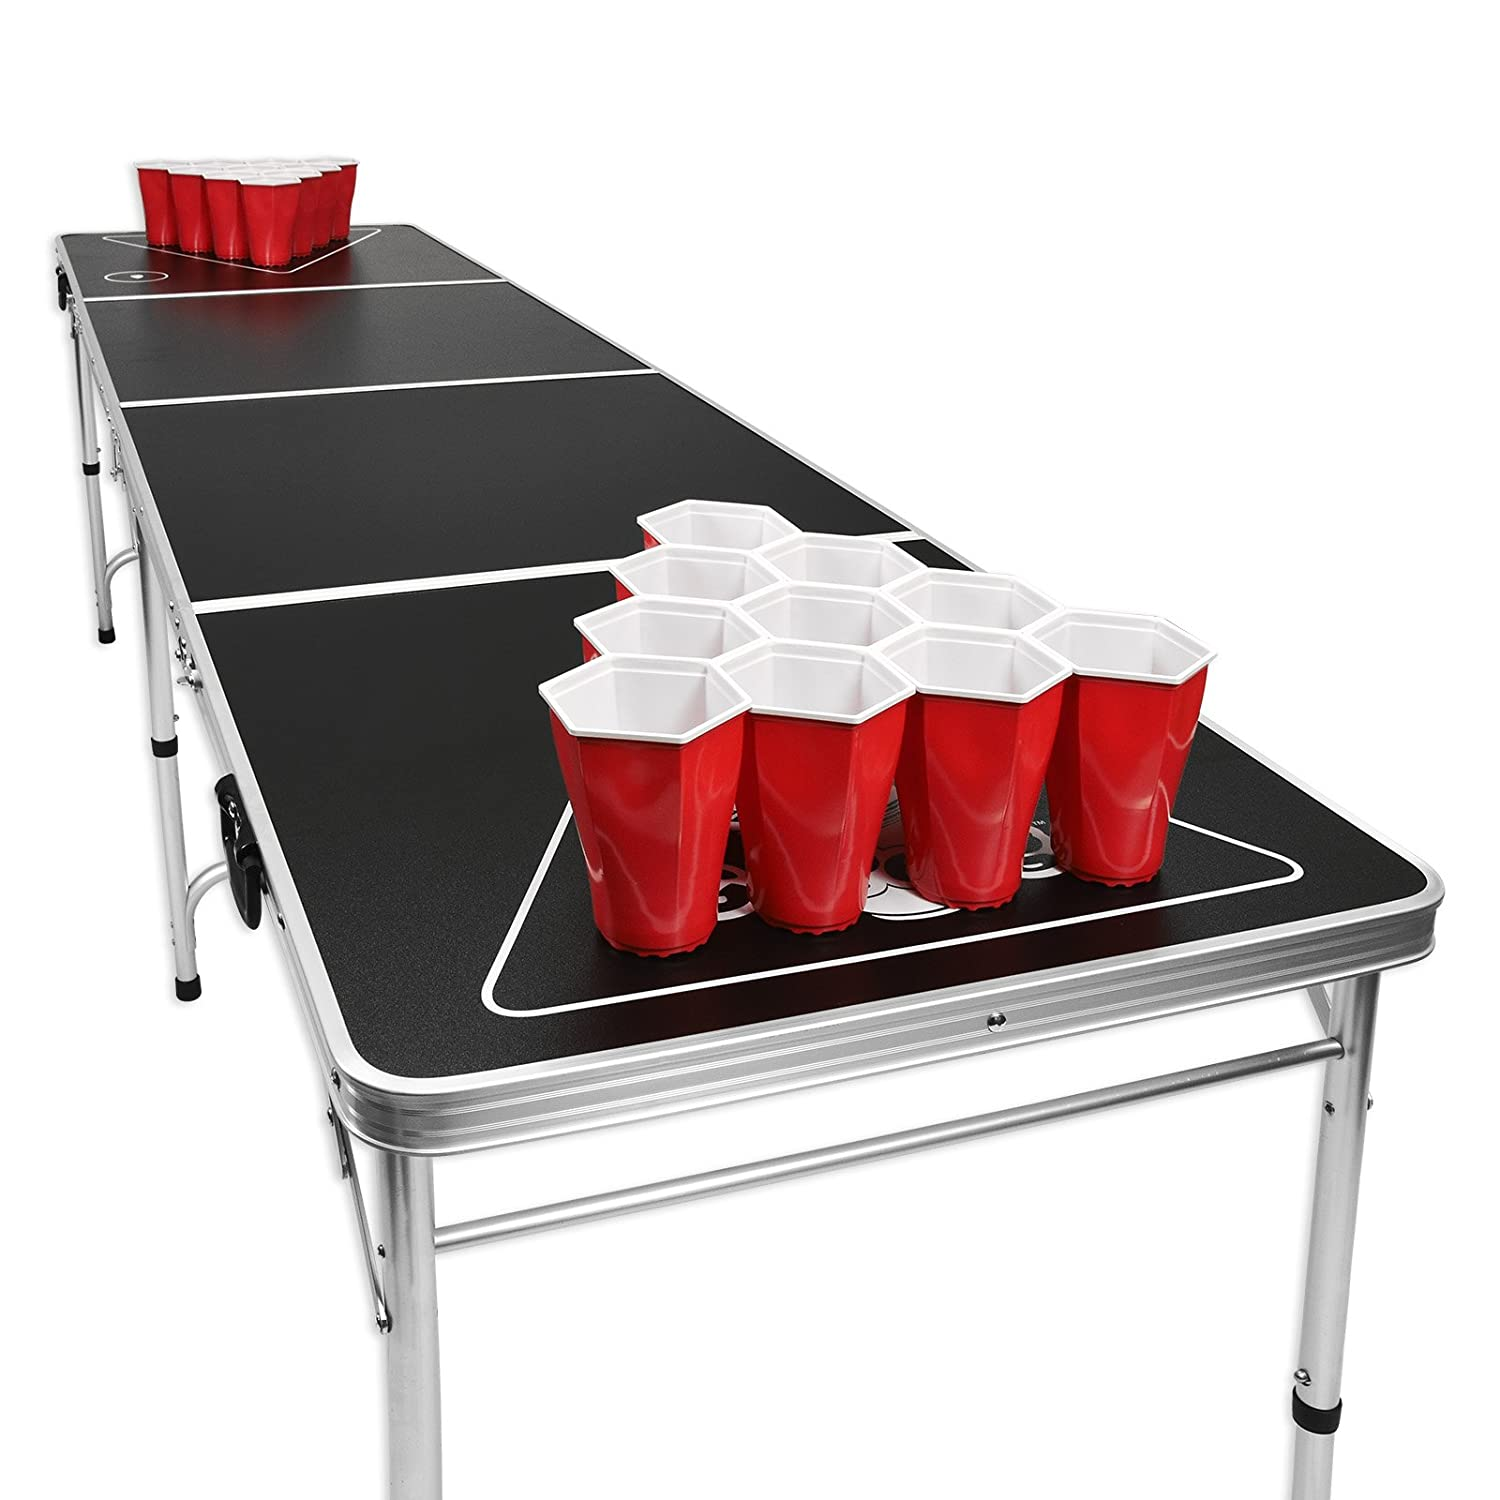 Beer pong table dimensions - Amazon Com Gopong 8 Foot Portable Folding Beer Pong Flip Cup Table 6 Balls Included Pong Games Sports Outdoors